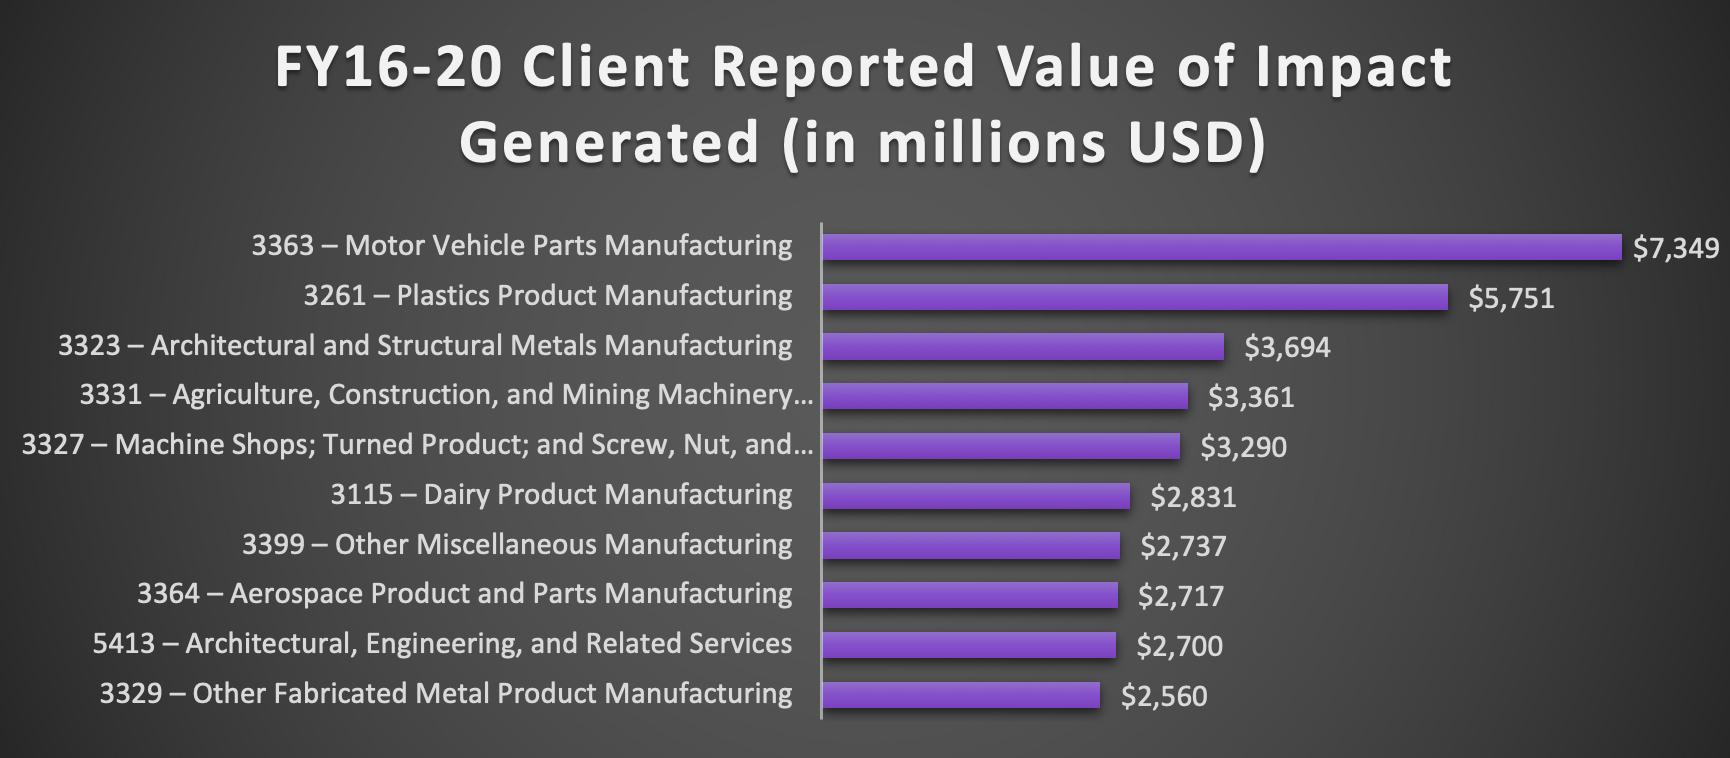 FY16-20 Client Reported Value of Impact Generated (in millions USD)